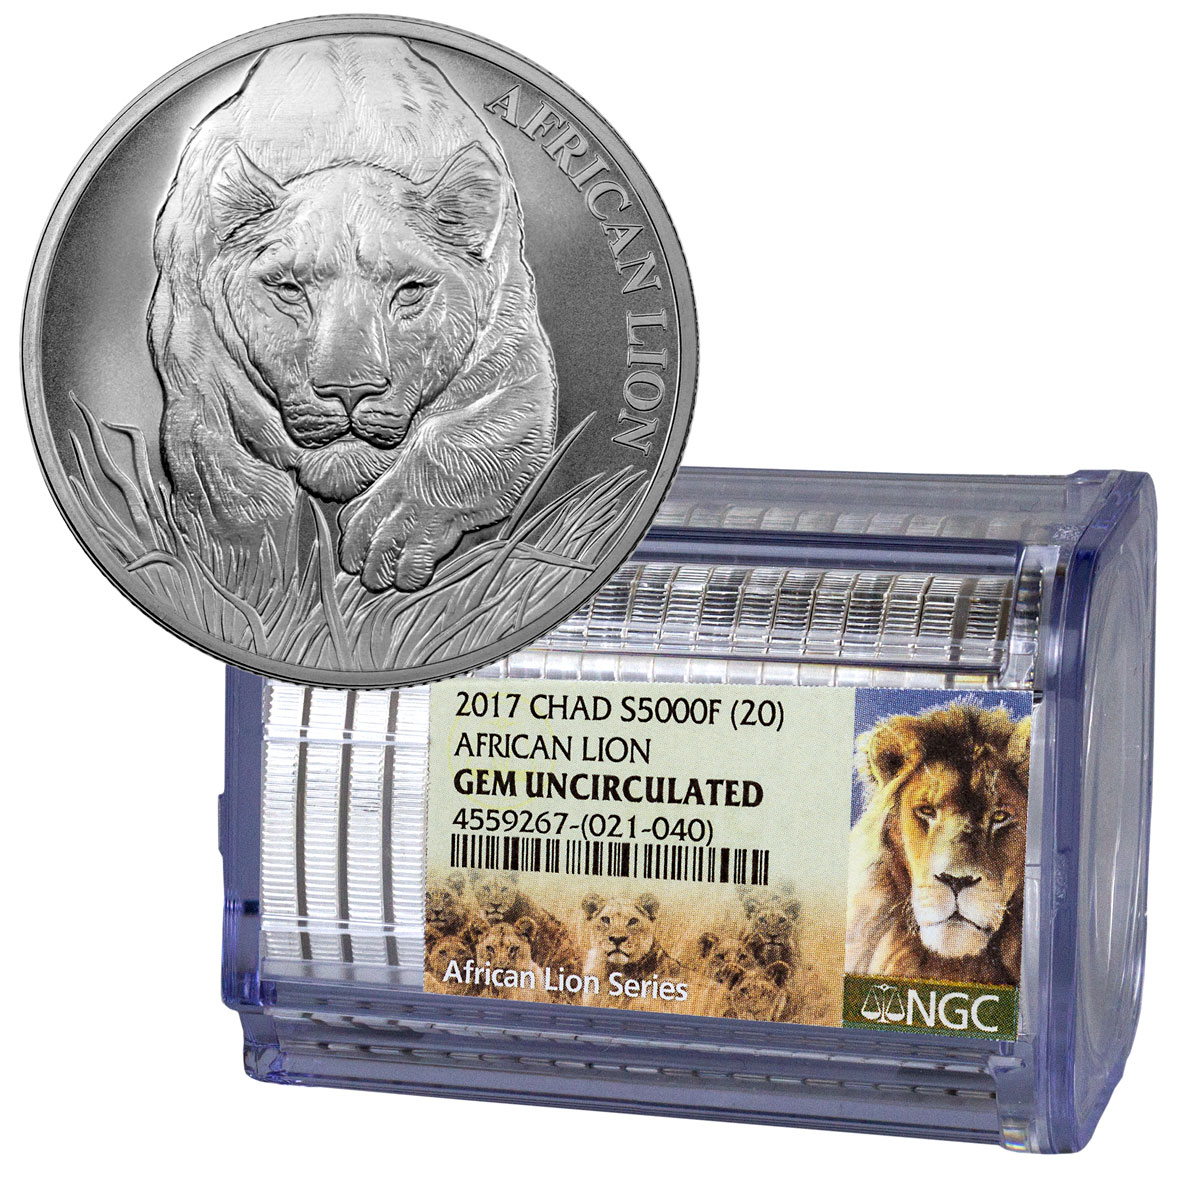 Certified Roll of 20 - 2017 Republic of Chad African Lion - 1 oz Silver 5000 Franc Coins NGC GEM Uncirculated Exclusive Lion Label